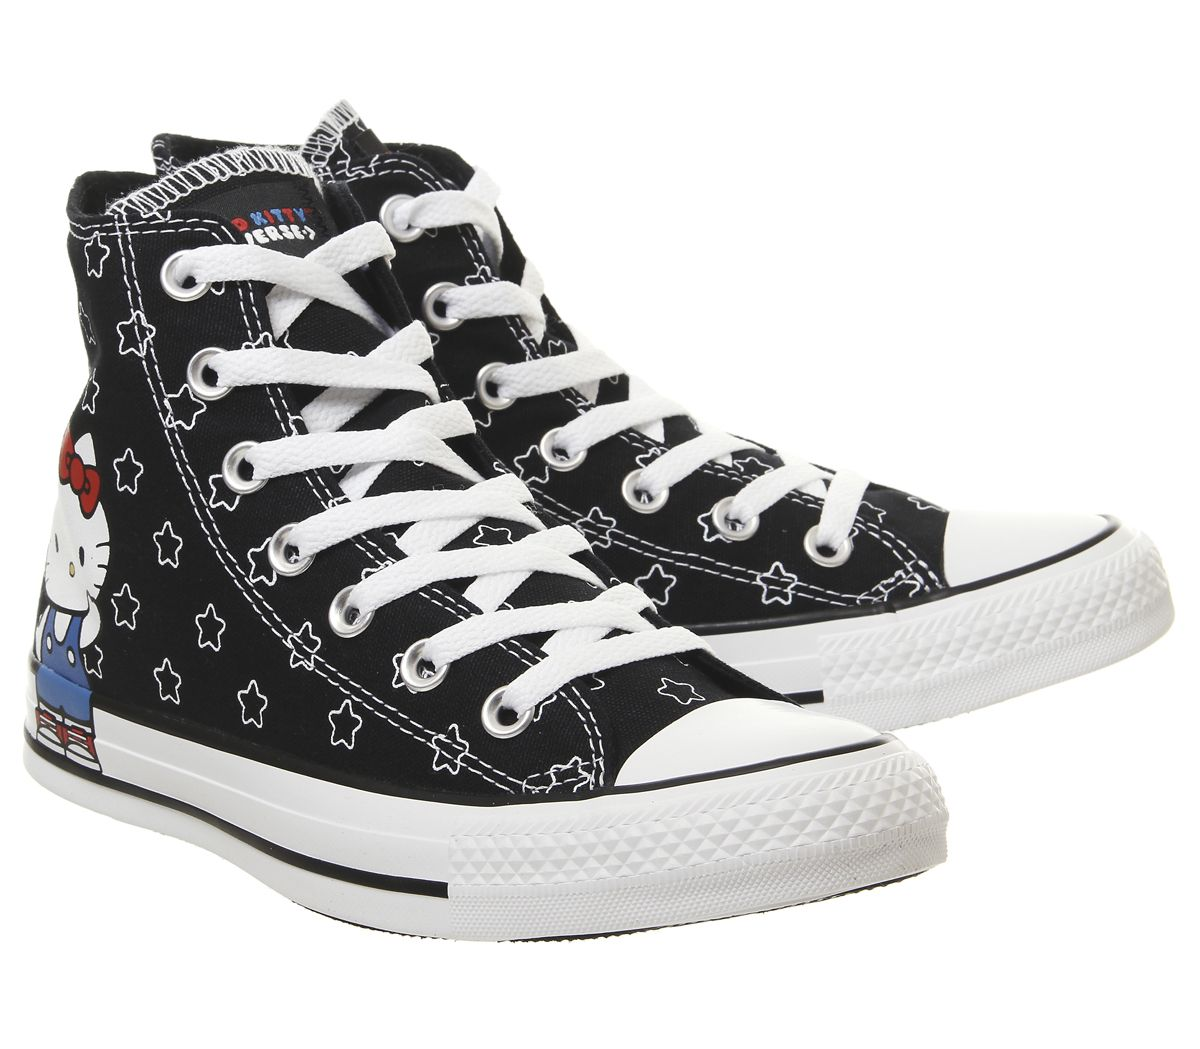 2df27e6fcef1 Details about Womens Converse Converse All Star Hi Trainers Hello Kitty Black  White Trainers S